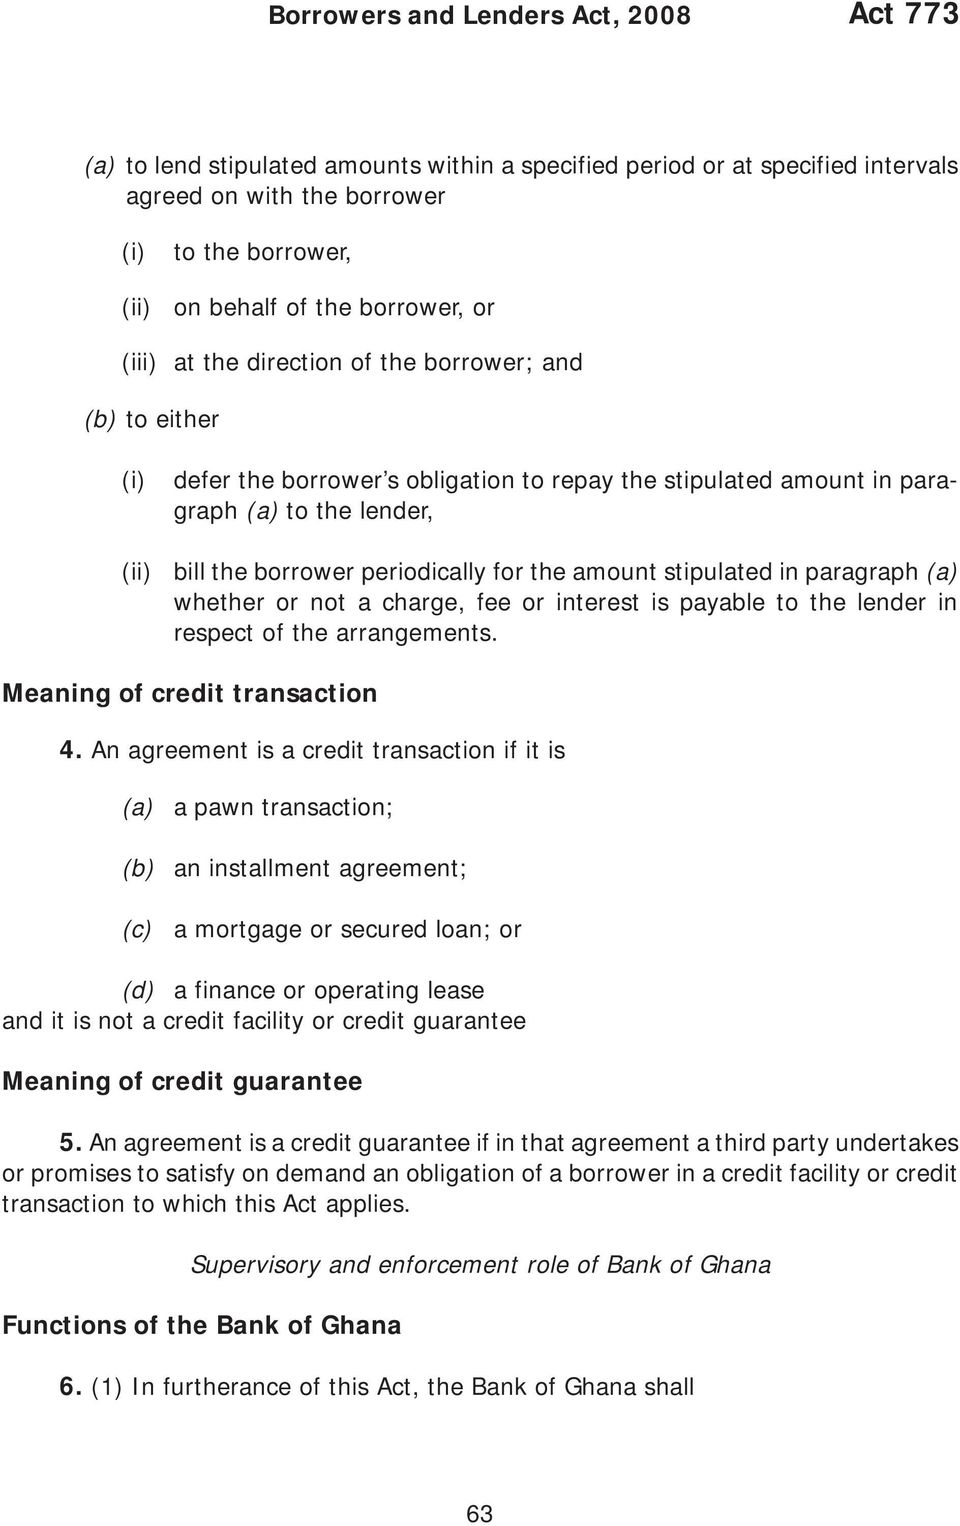 amount stipulated in paragraph whether or not a charge, fee or interest is payable to the lender in respect of the arrangements. Meaning of credit transaction 4.